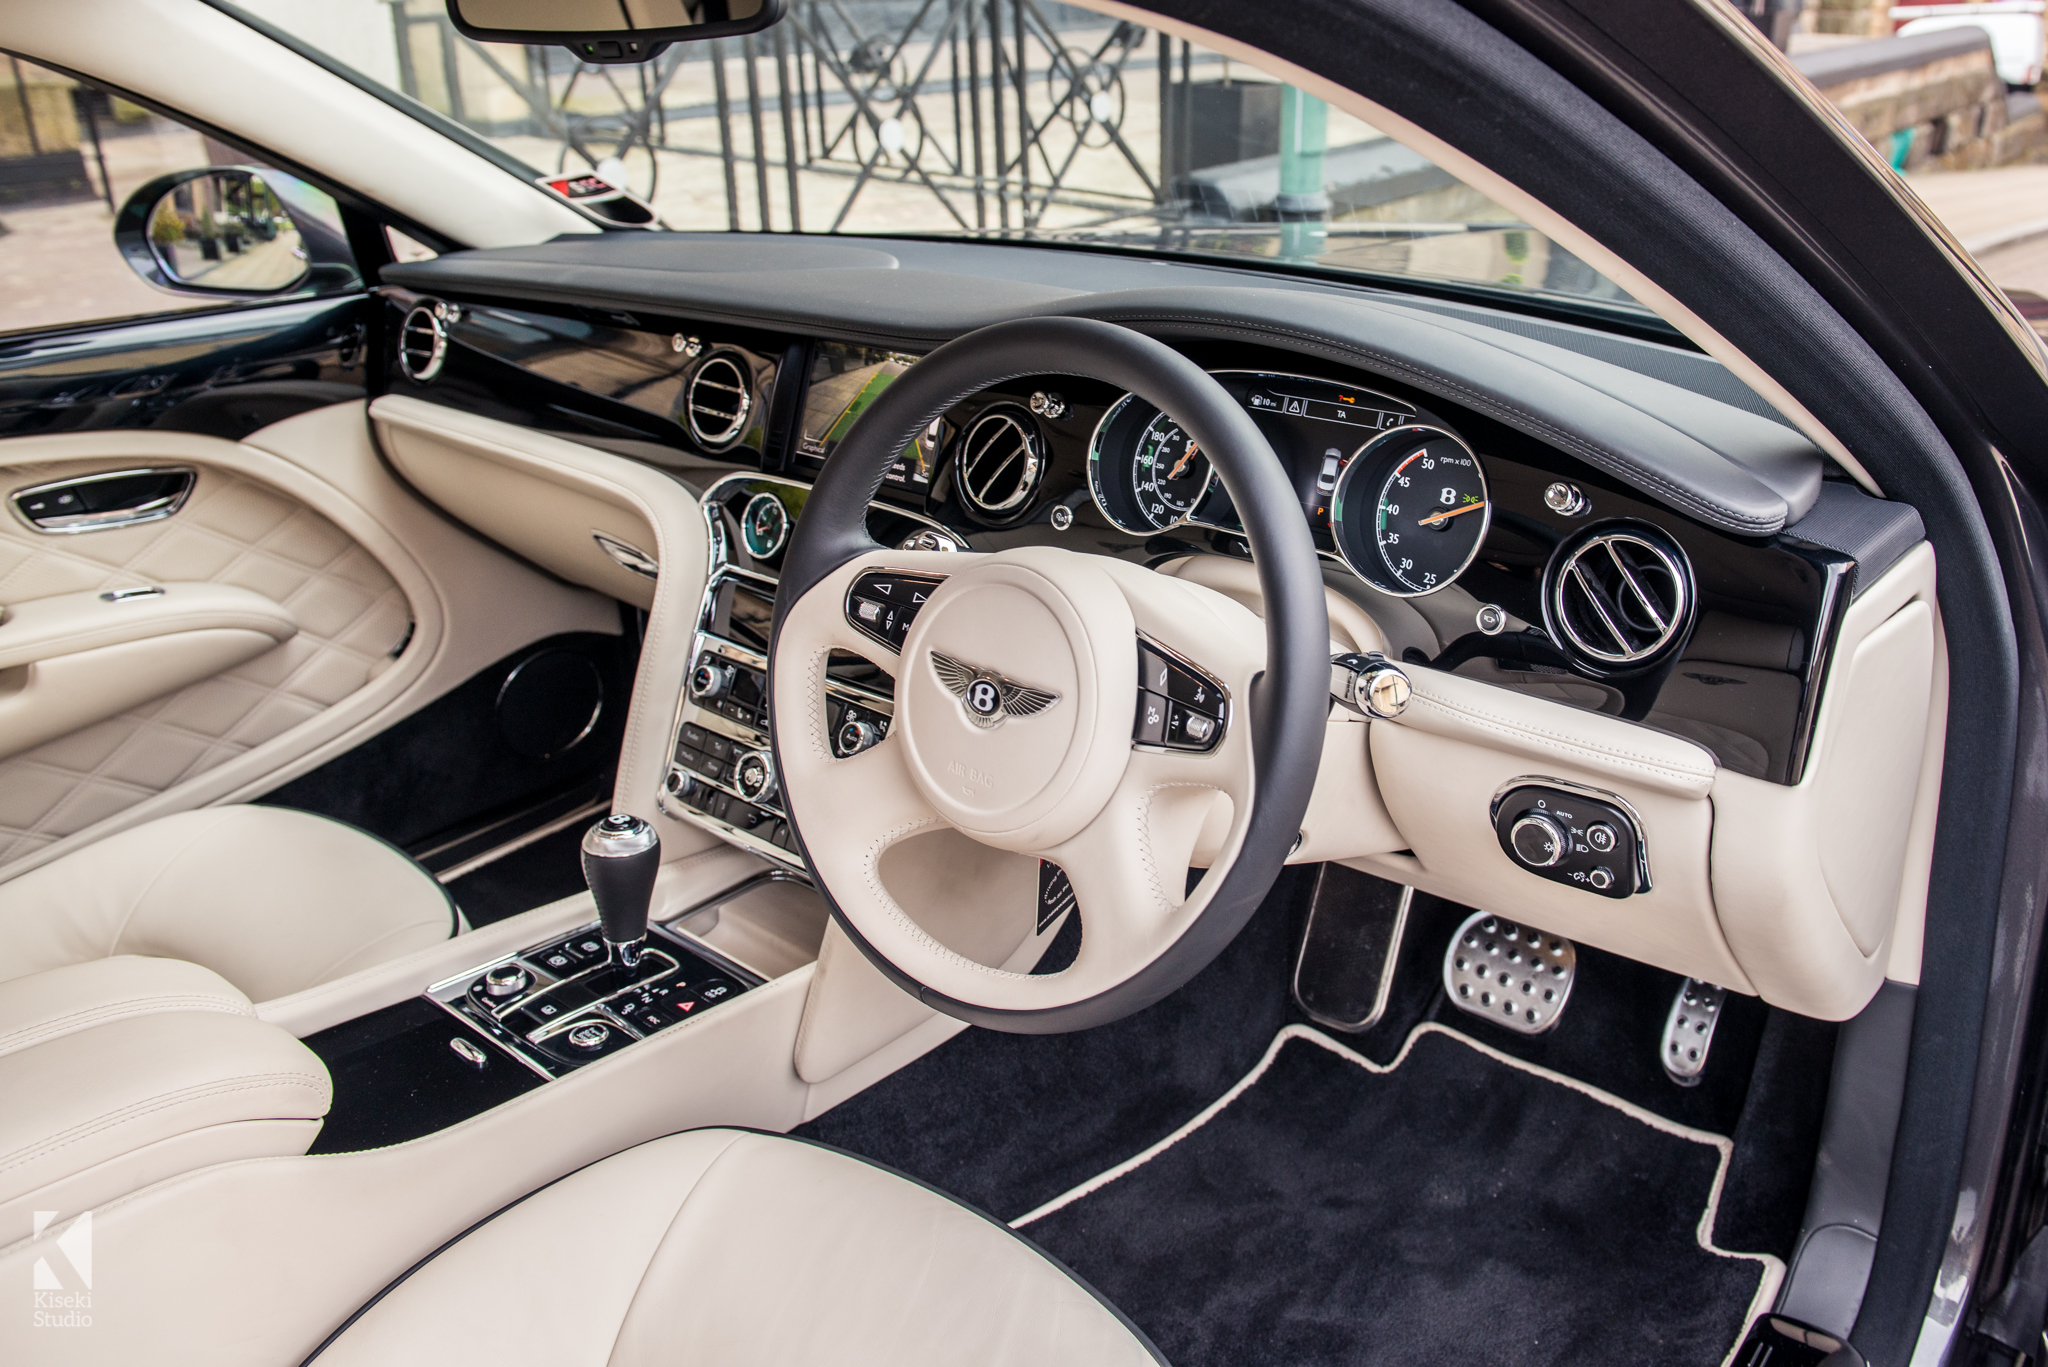 2014 bentley mulsanne interior image collections hd cars wallpaper 2014 bentley mulsanne interior images hd cars wallpaper related keywords suggestions for mulsanne interior keyword images vanachro Images